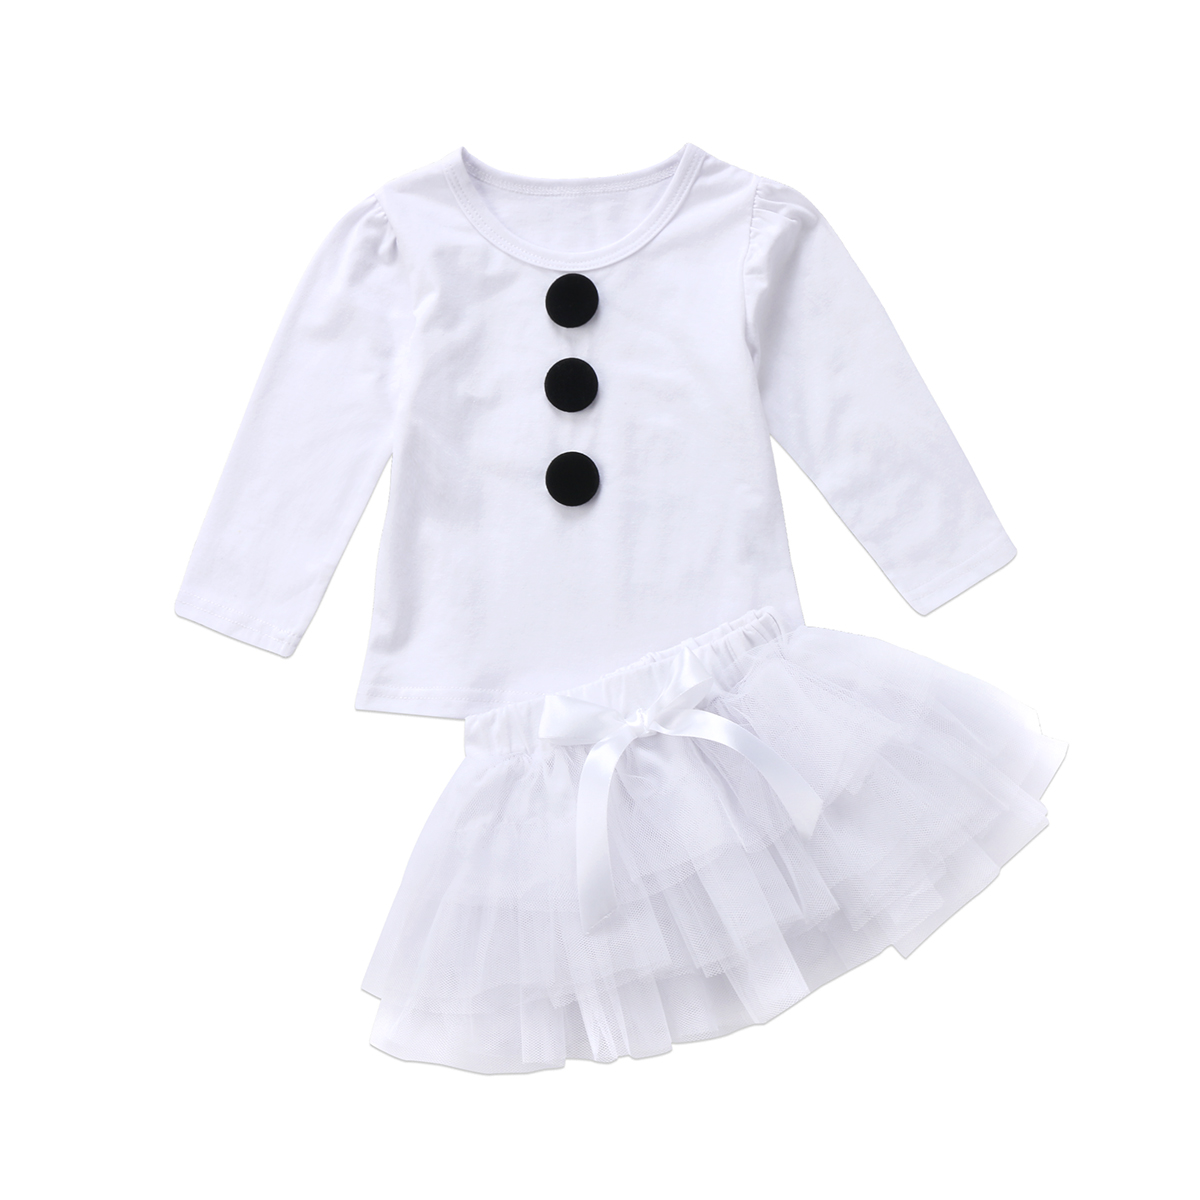 2017 2pcs Christmas Baby Kids Girls clothes set Princess Snowman long sleeves T shirt Tulle Tutu Party lace skirts xmas Outfits